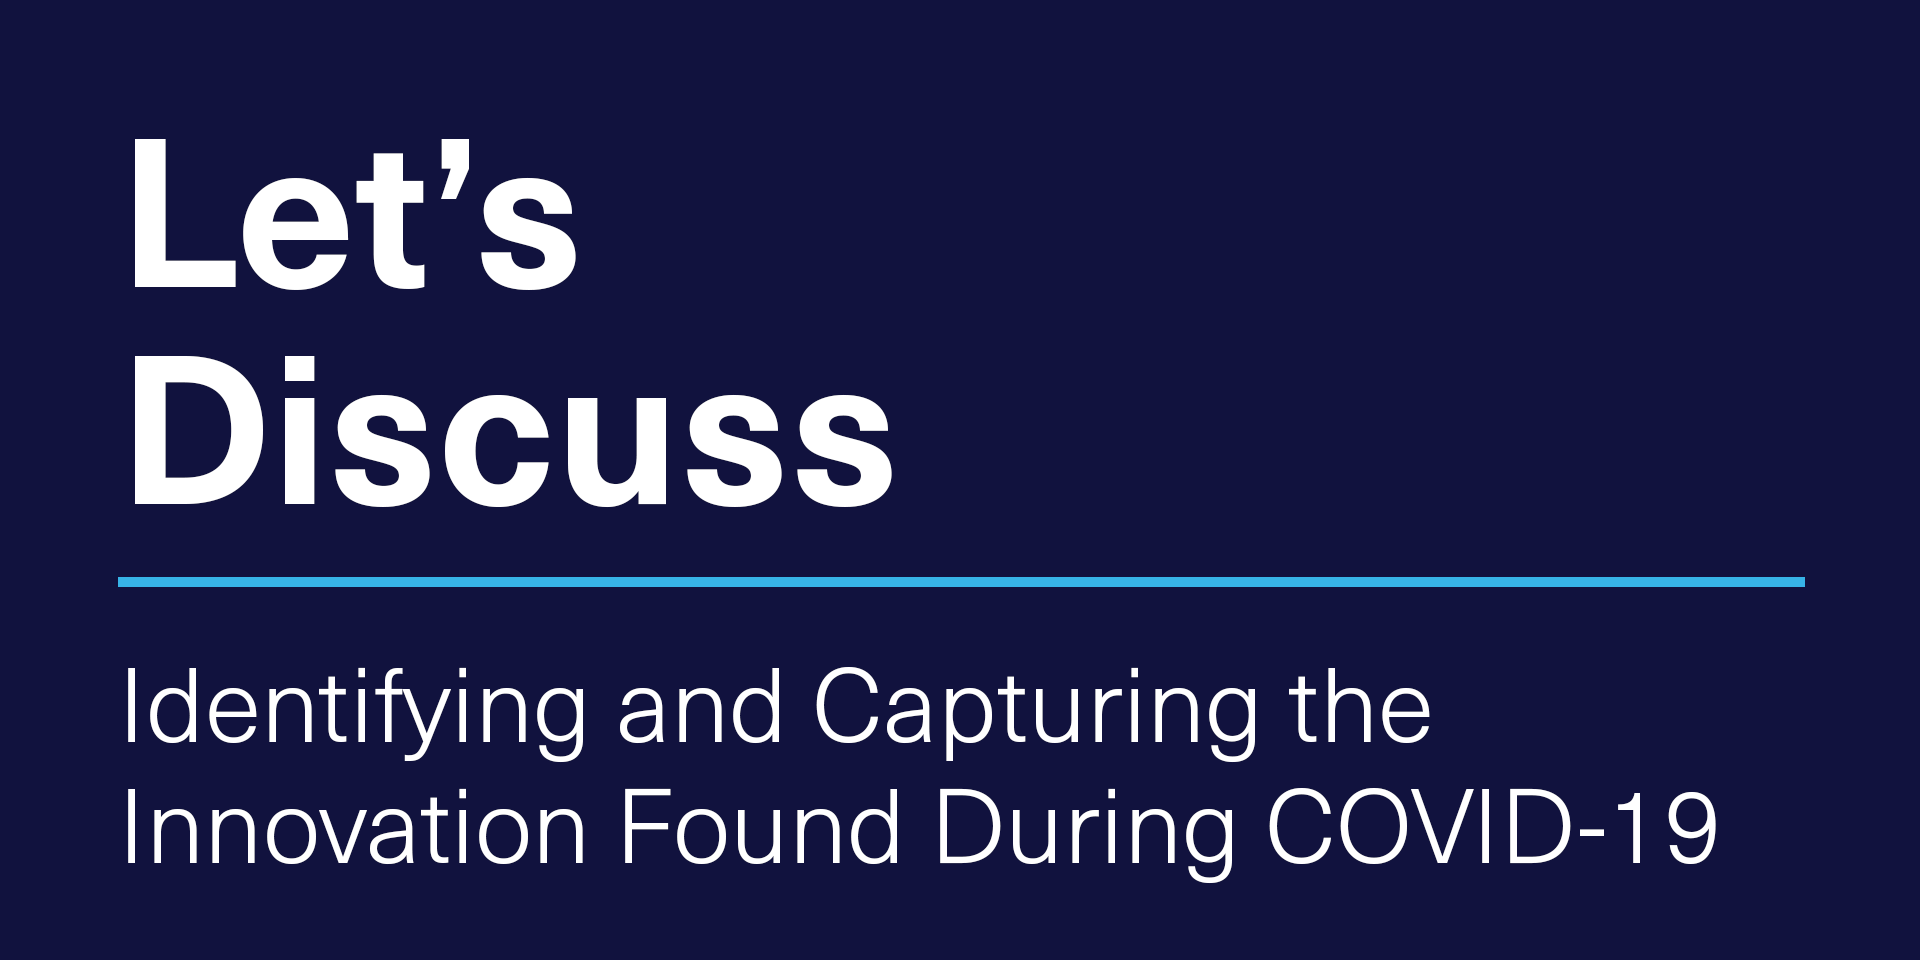 [VIRTUAL] Let's Discuss | Identifying and Capturing the Innovation Found During COVID-19